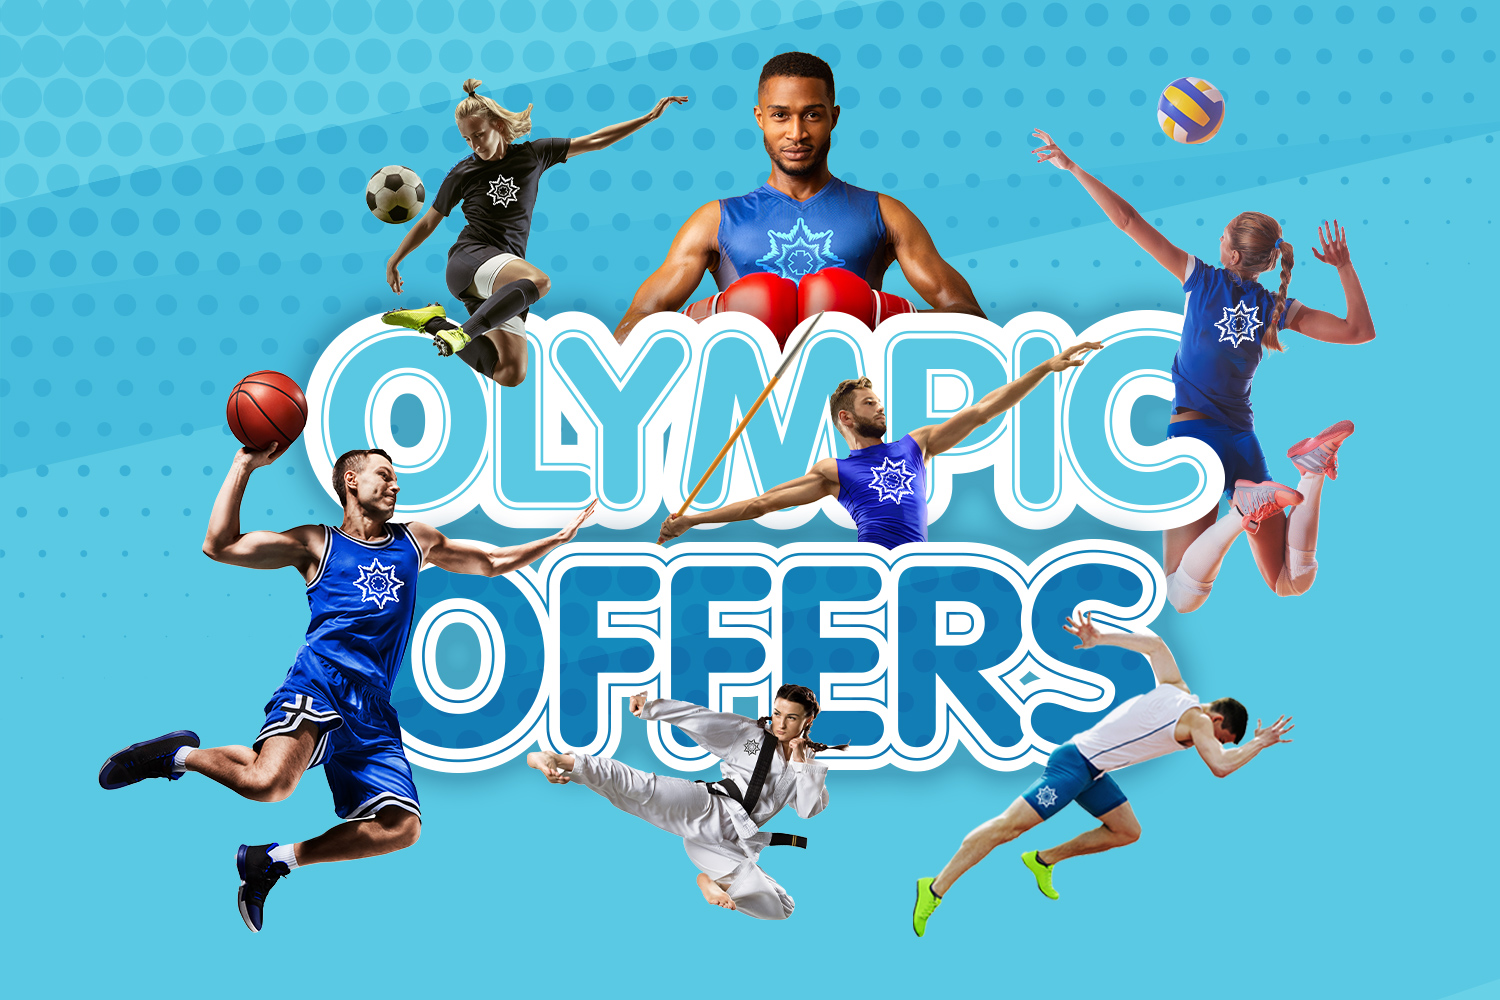 Olympic-sized sporting offers